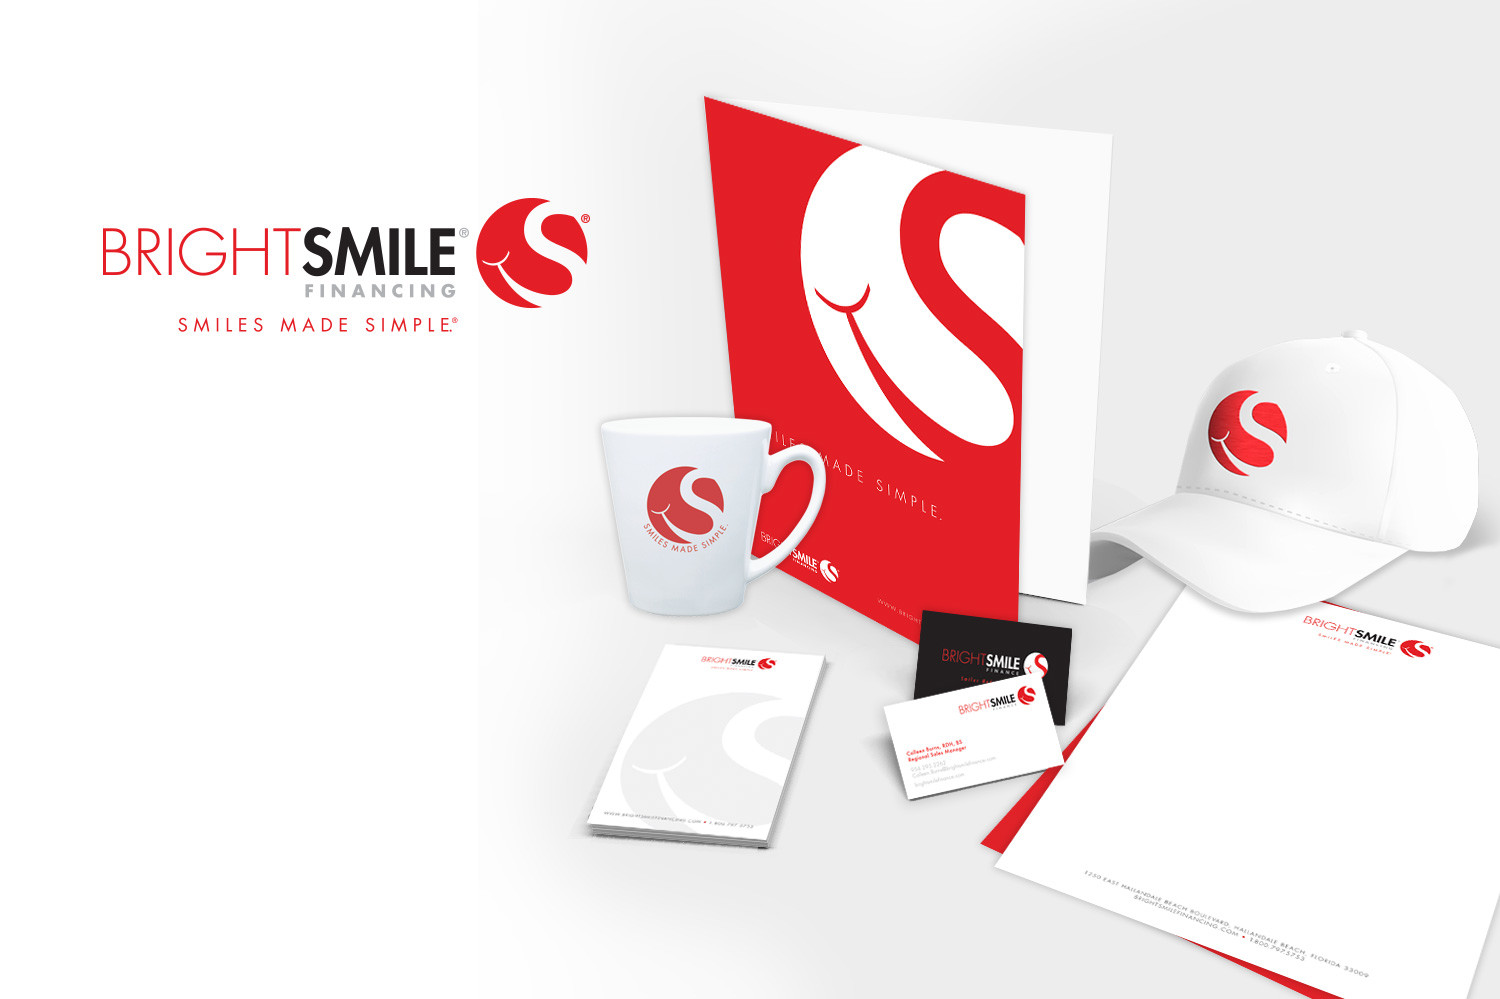 BrightSmile_CorporateIdentity